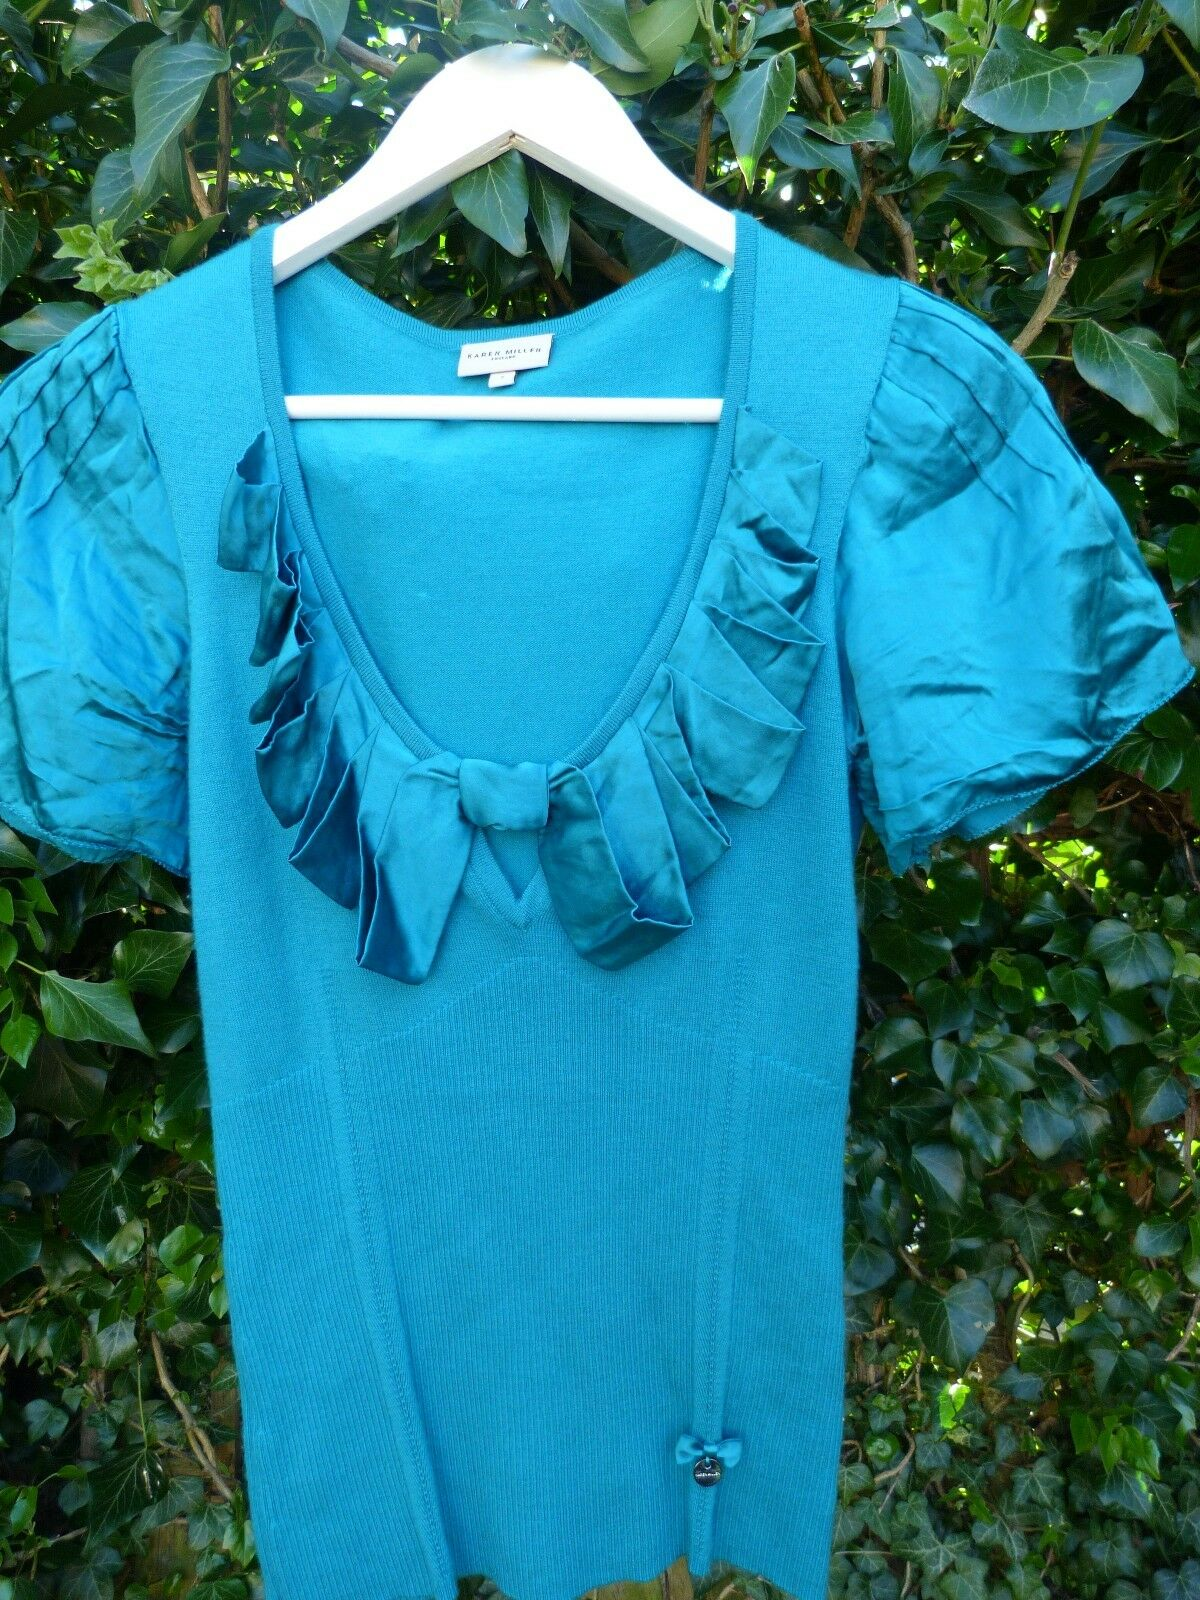 Karen Millen top size medium electic green stunning party